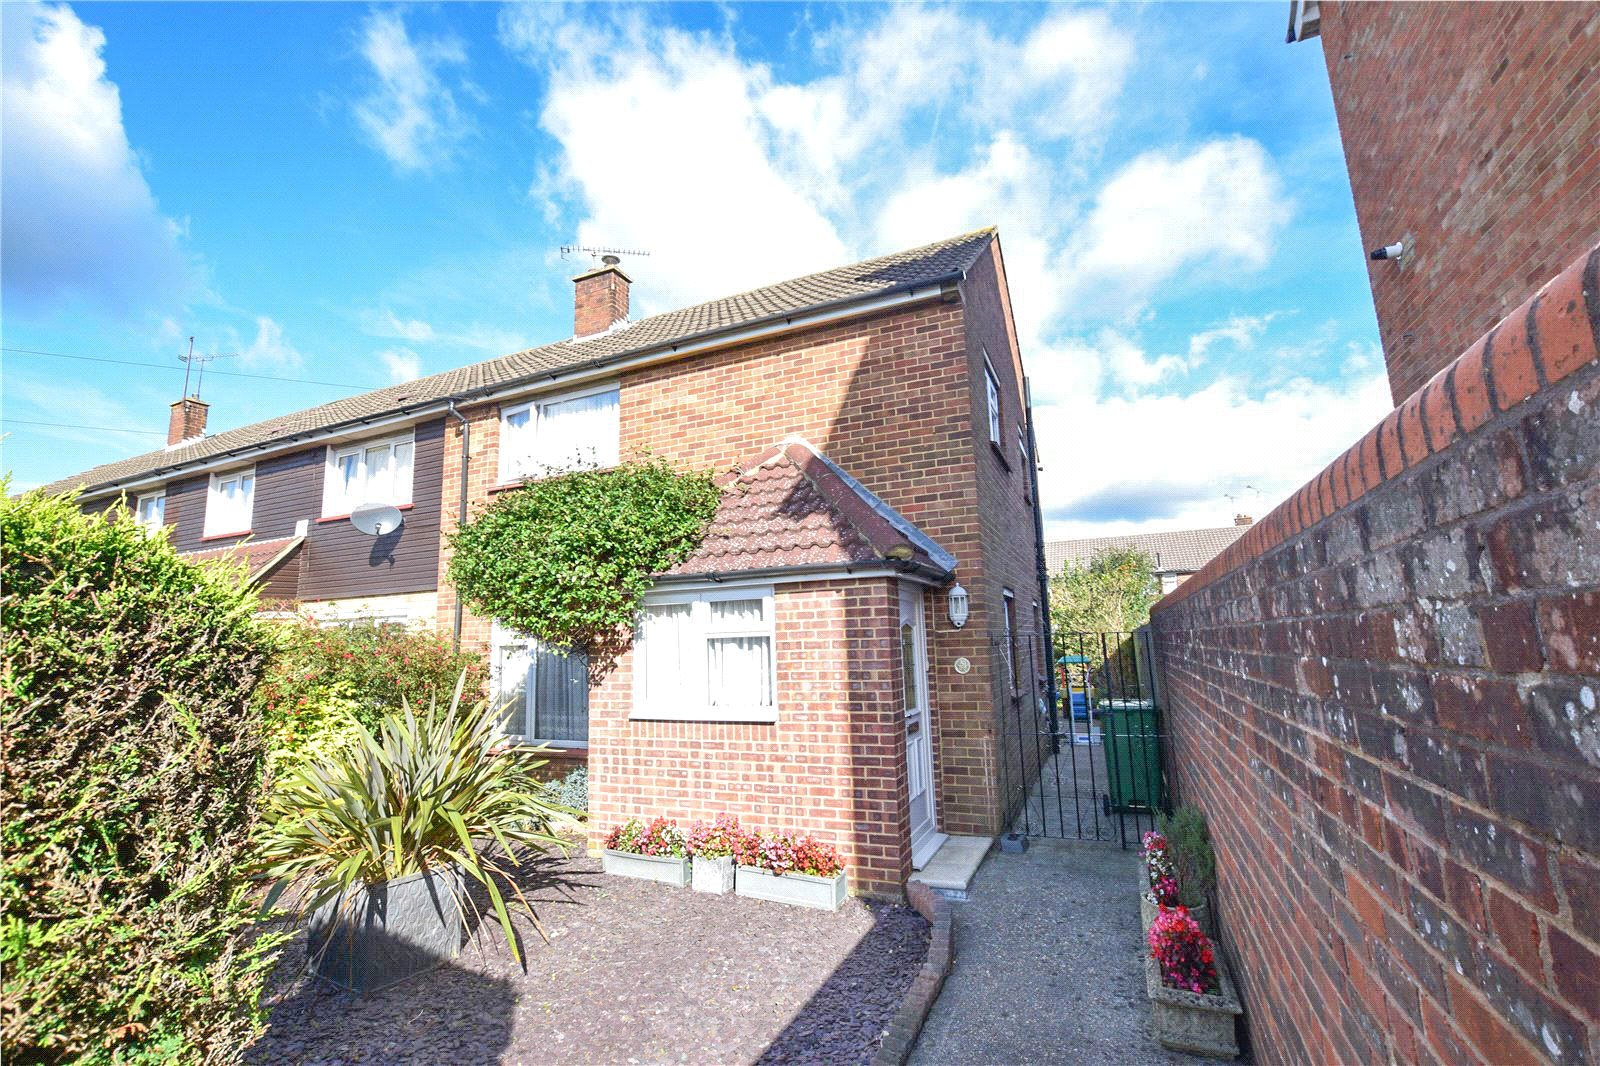 3 Bedrooms End Of Terrace House for sale in Horseshoe Crescent, Camberley, Surrey, GU15